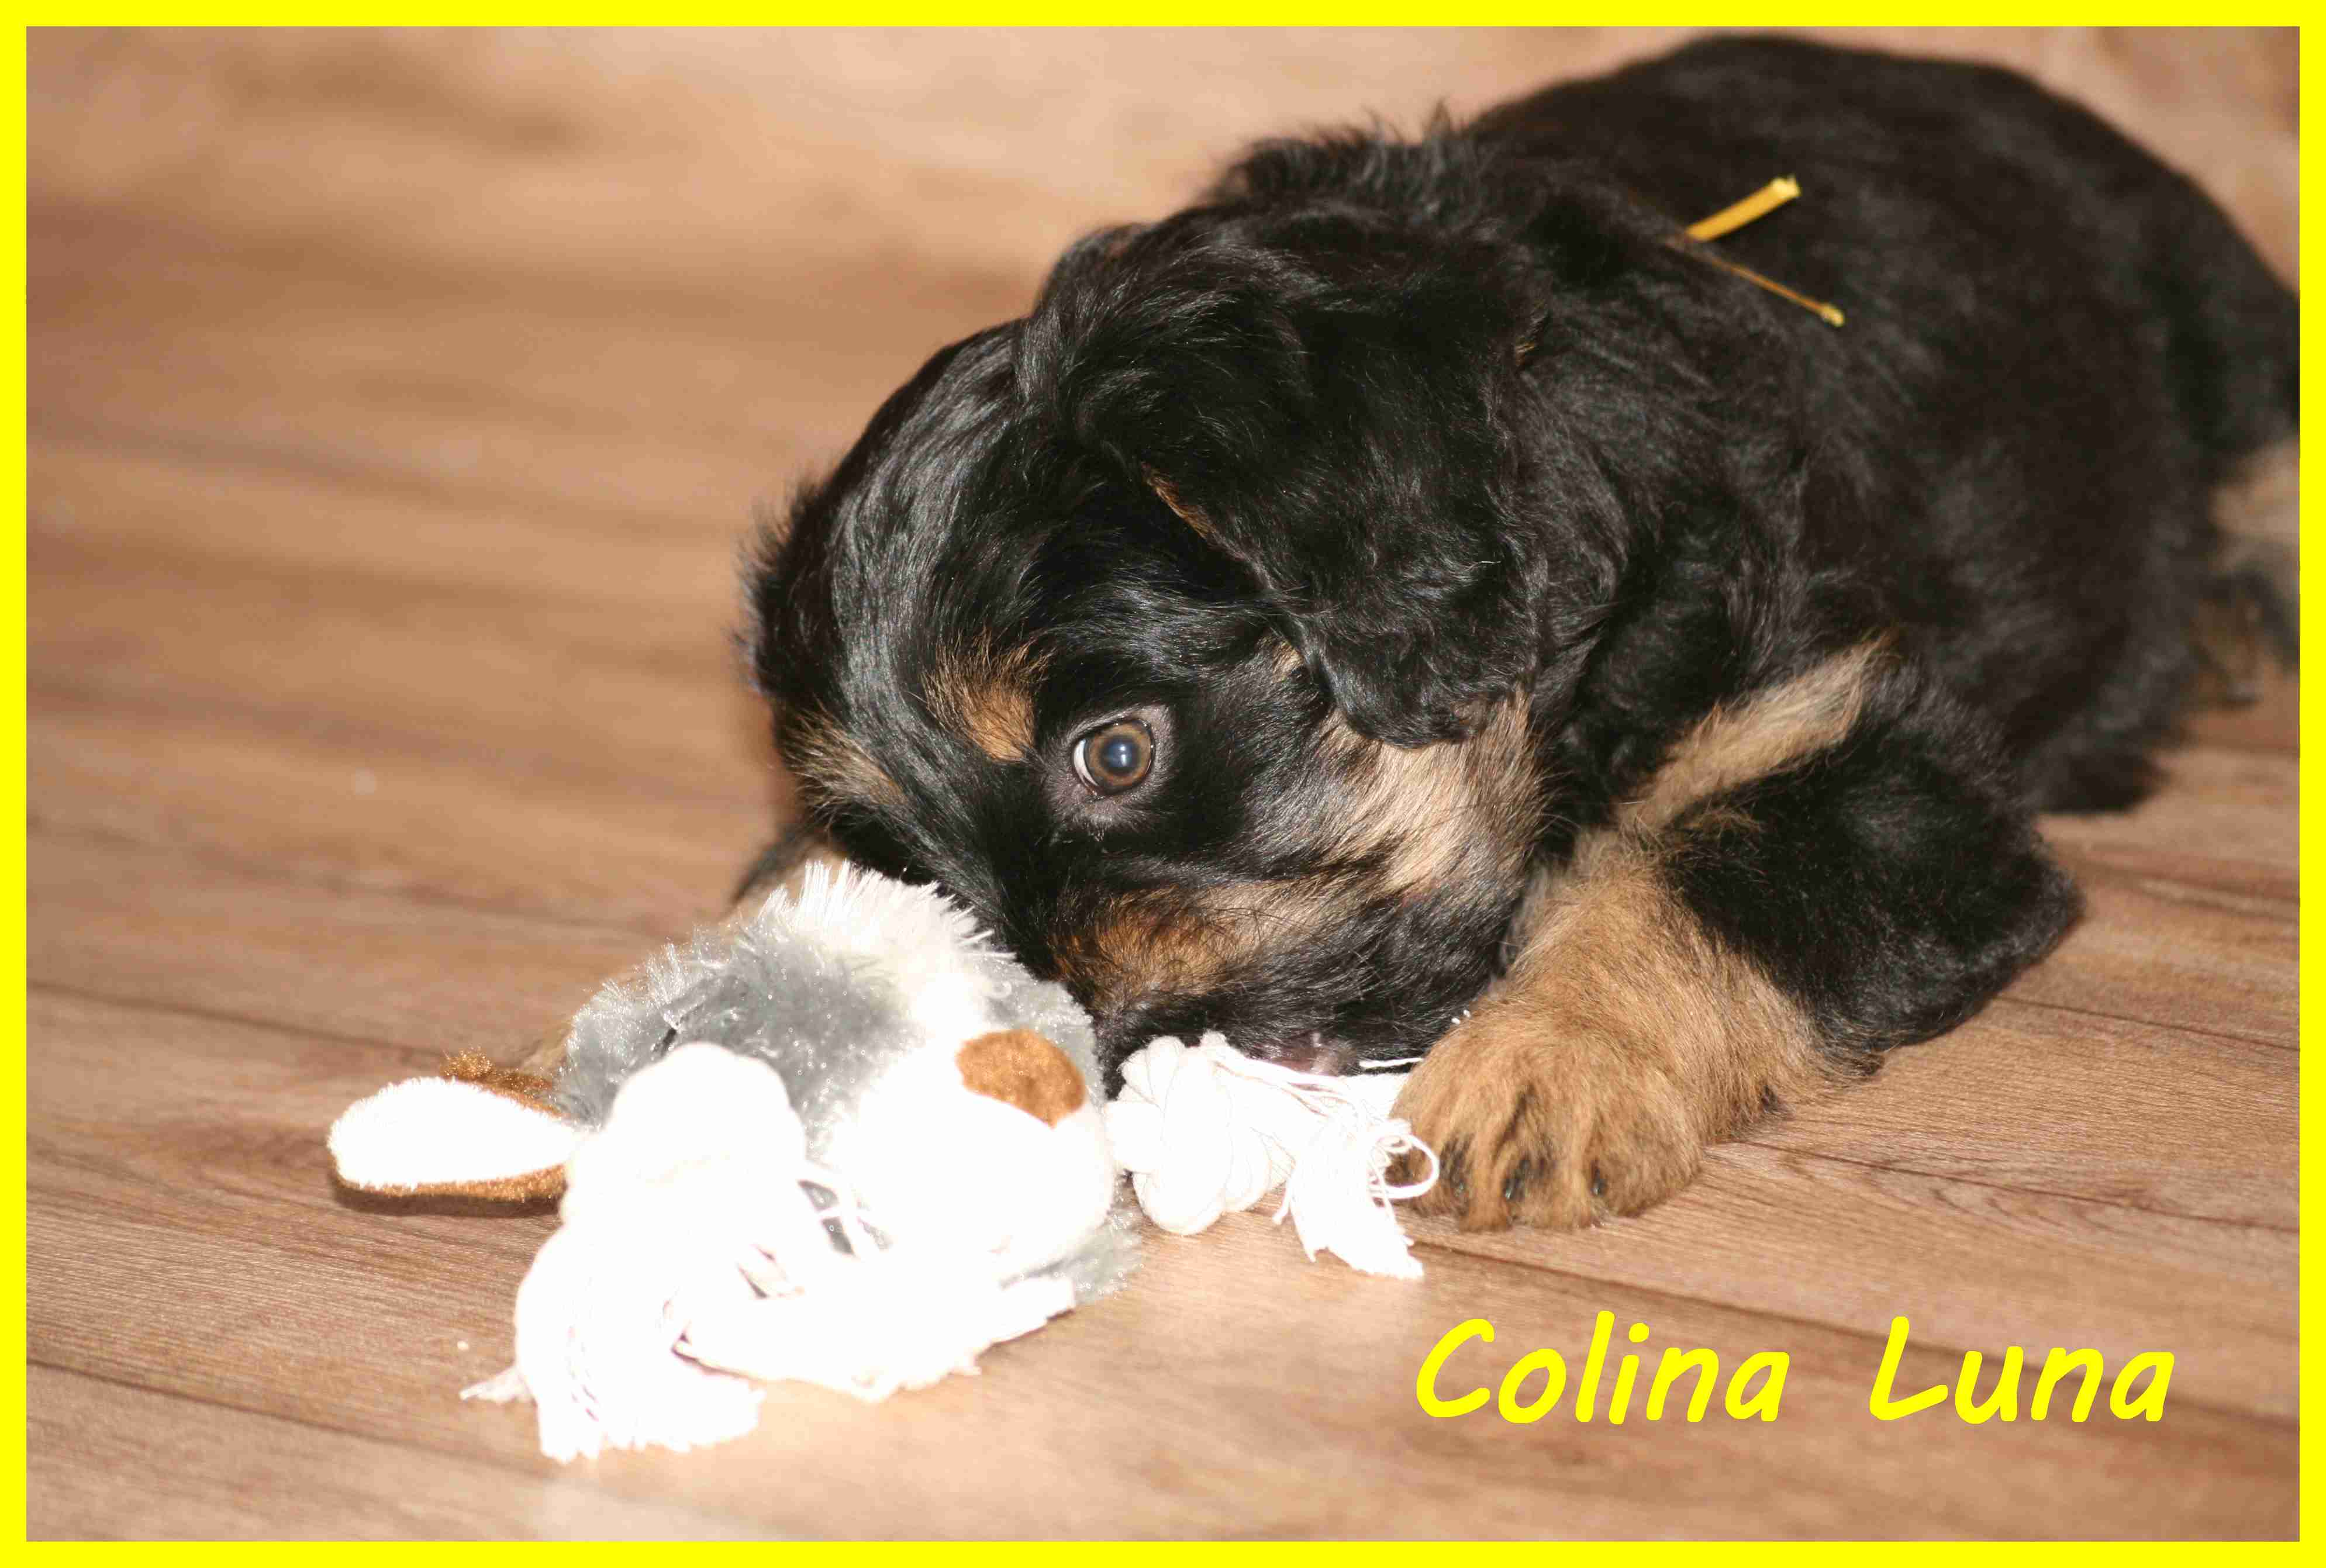 Colina with 8 weeks